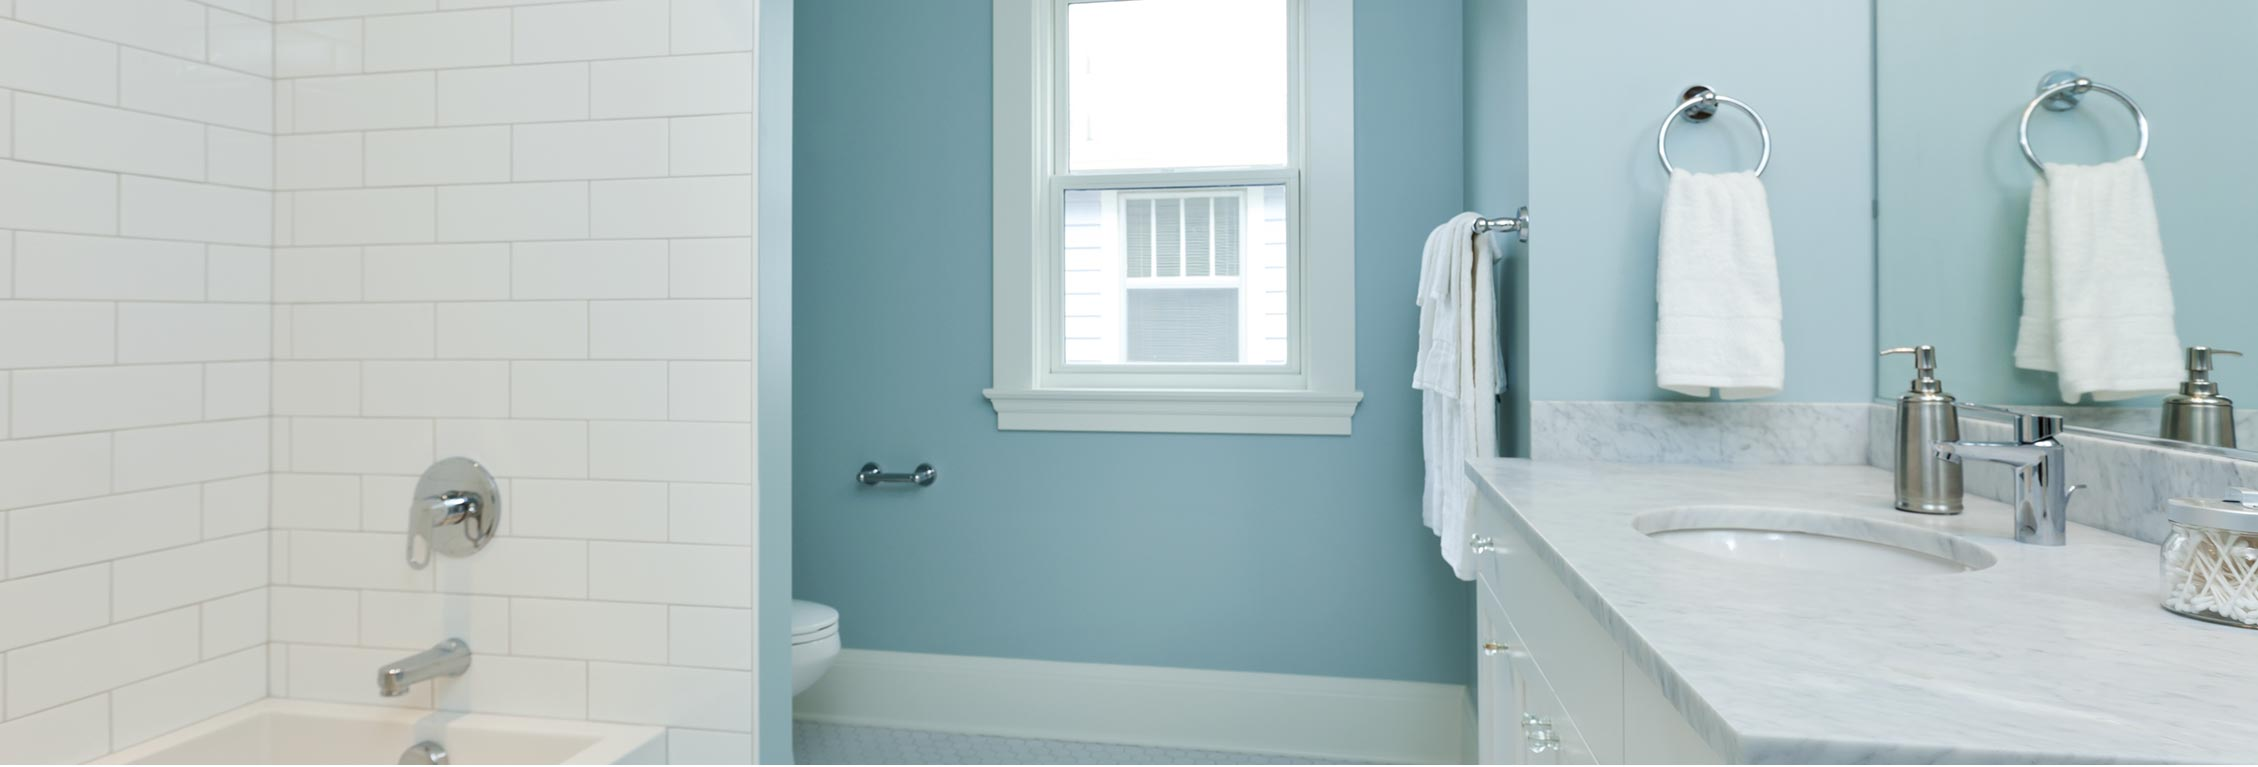 Best Colors to Use in a Small Bathroom - Home Decorating & Painting Advice